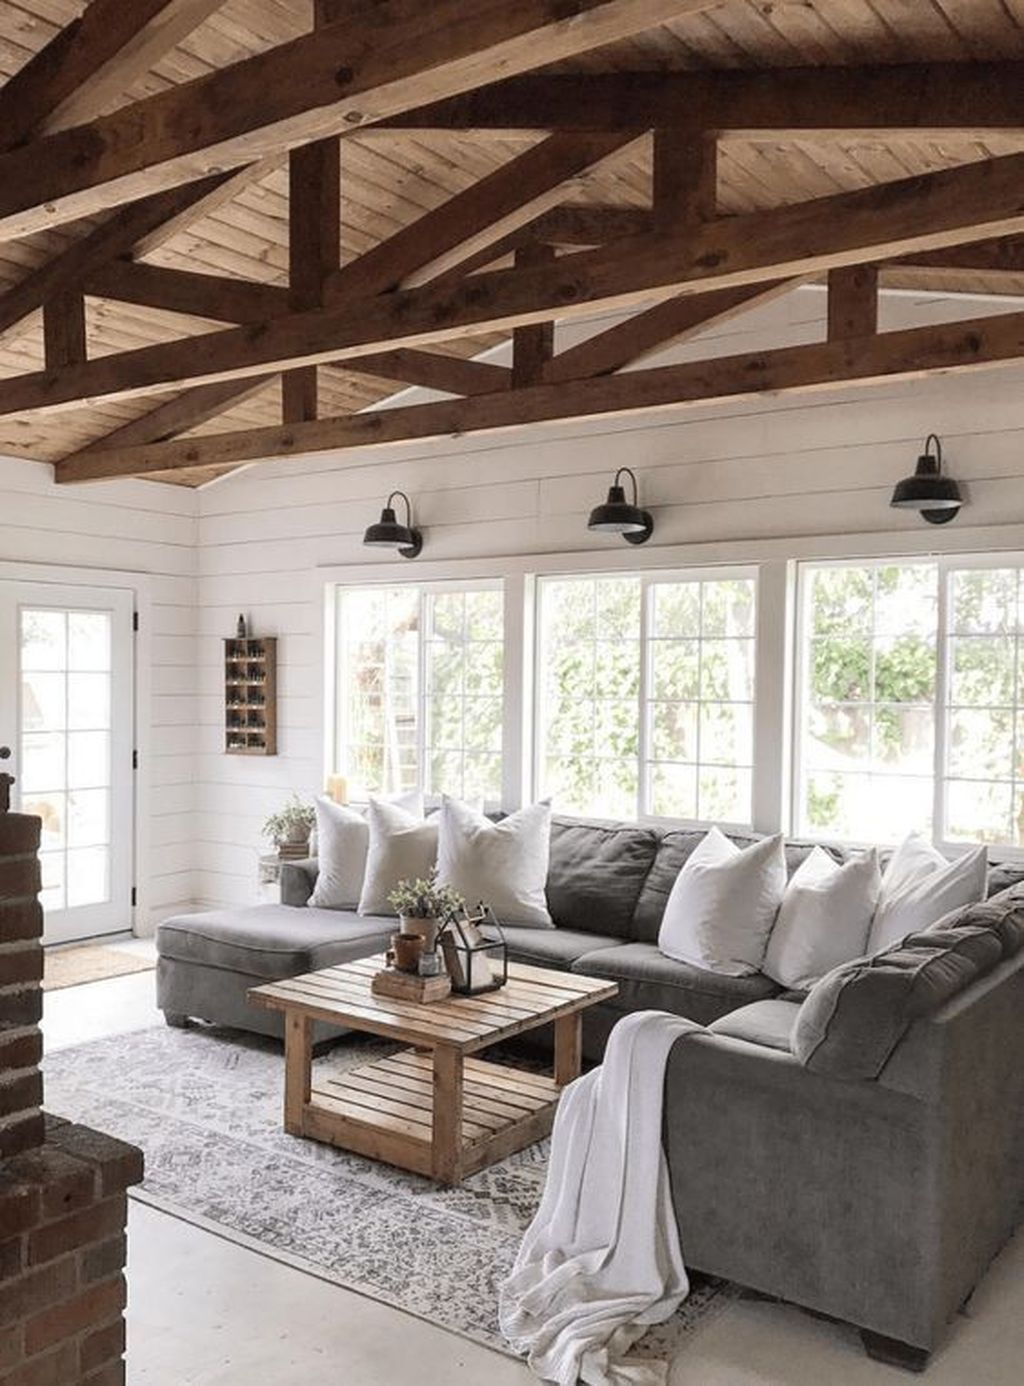 Admirable Farmhouse Living Room Decor Ideas 07